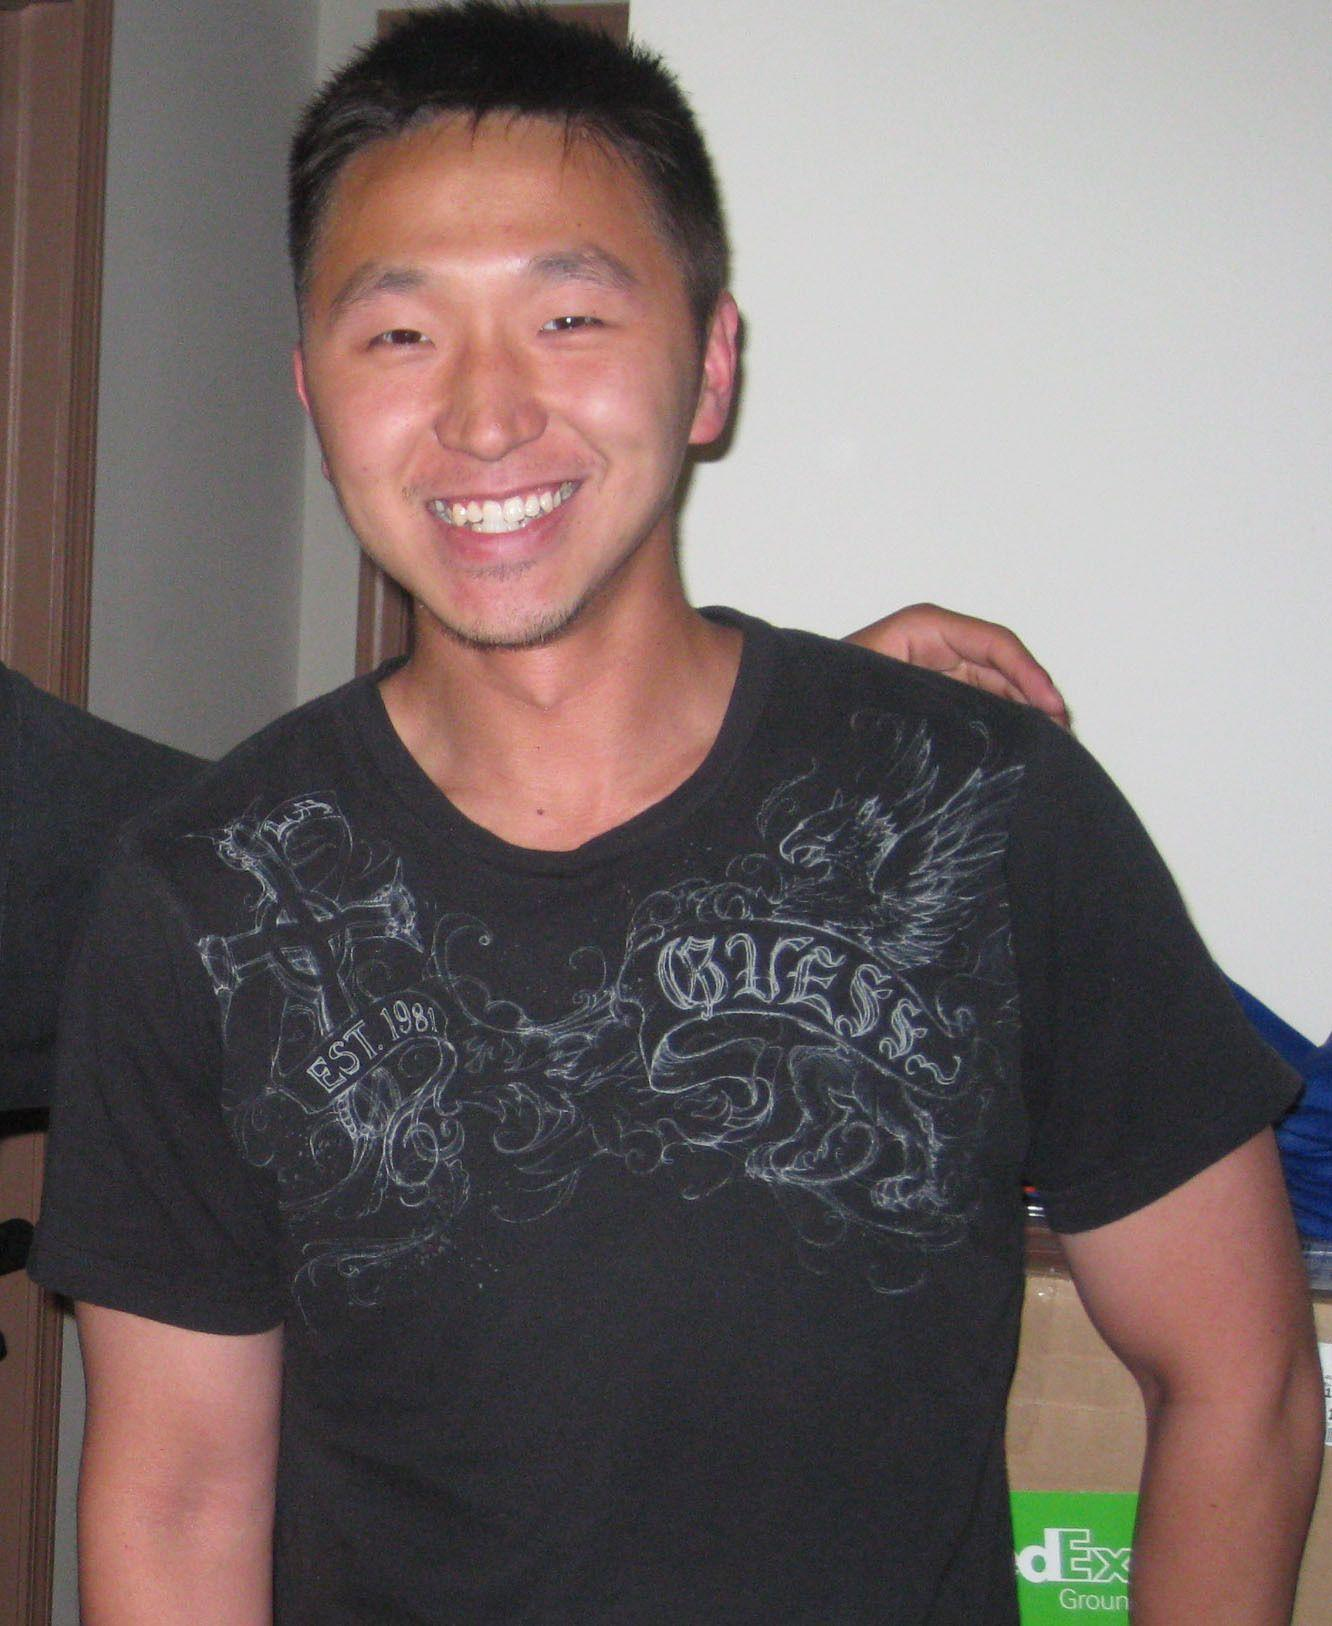 north hudson asian singles I am thankful that this service exists for asian singles such as myself i put out a personal on your service,  tim hudson, canada available languages:.